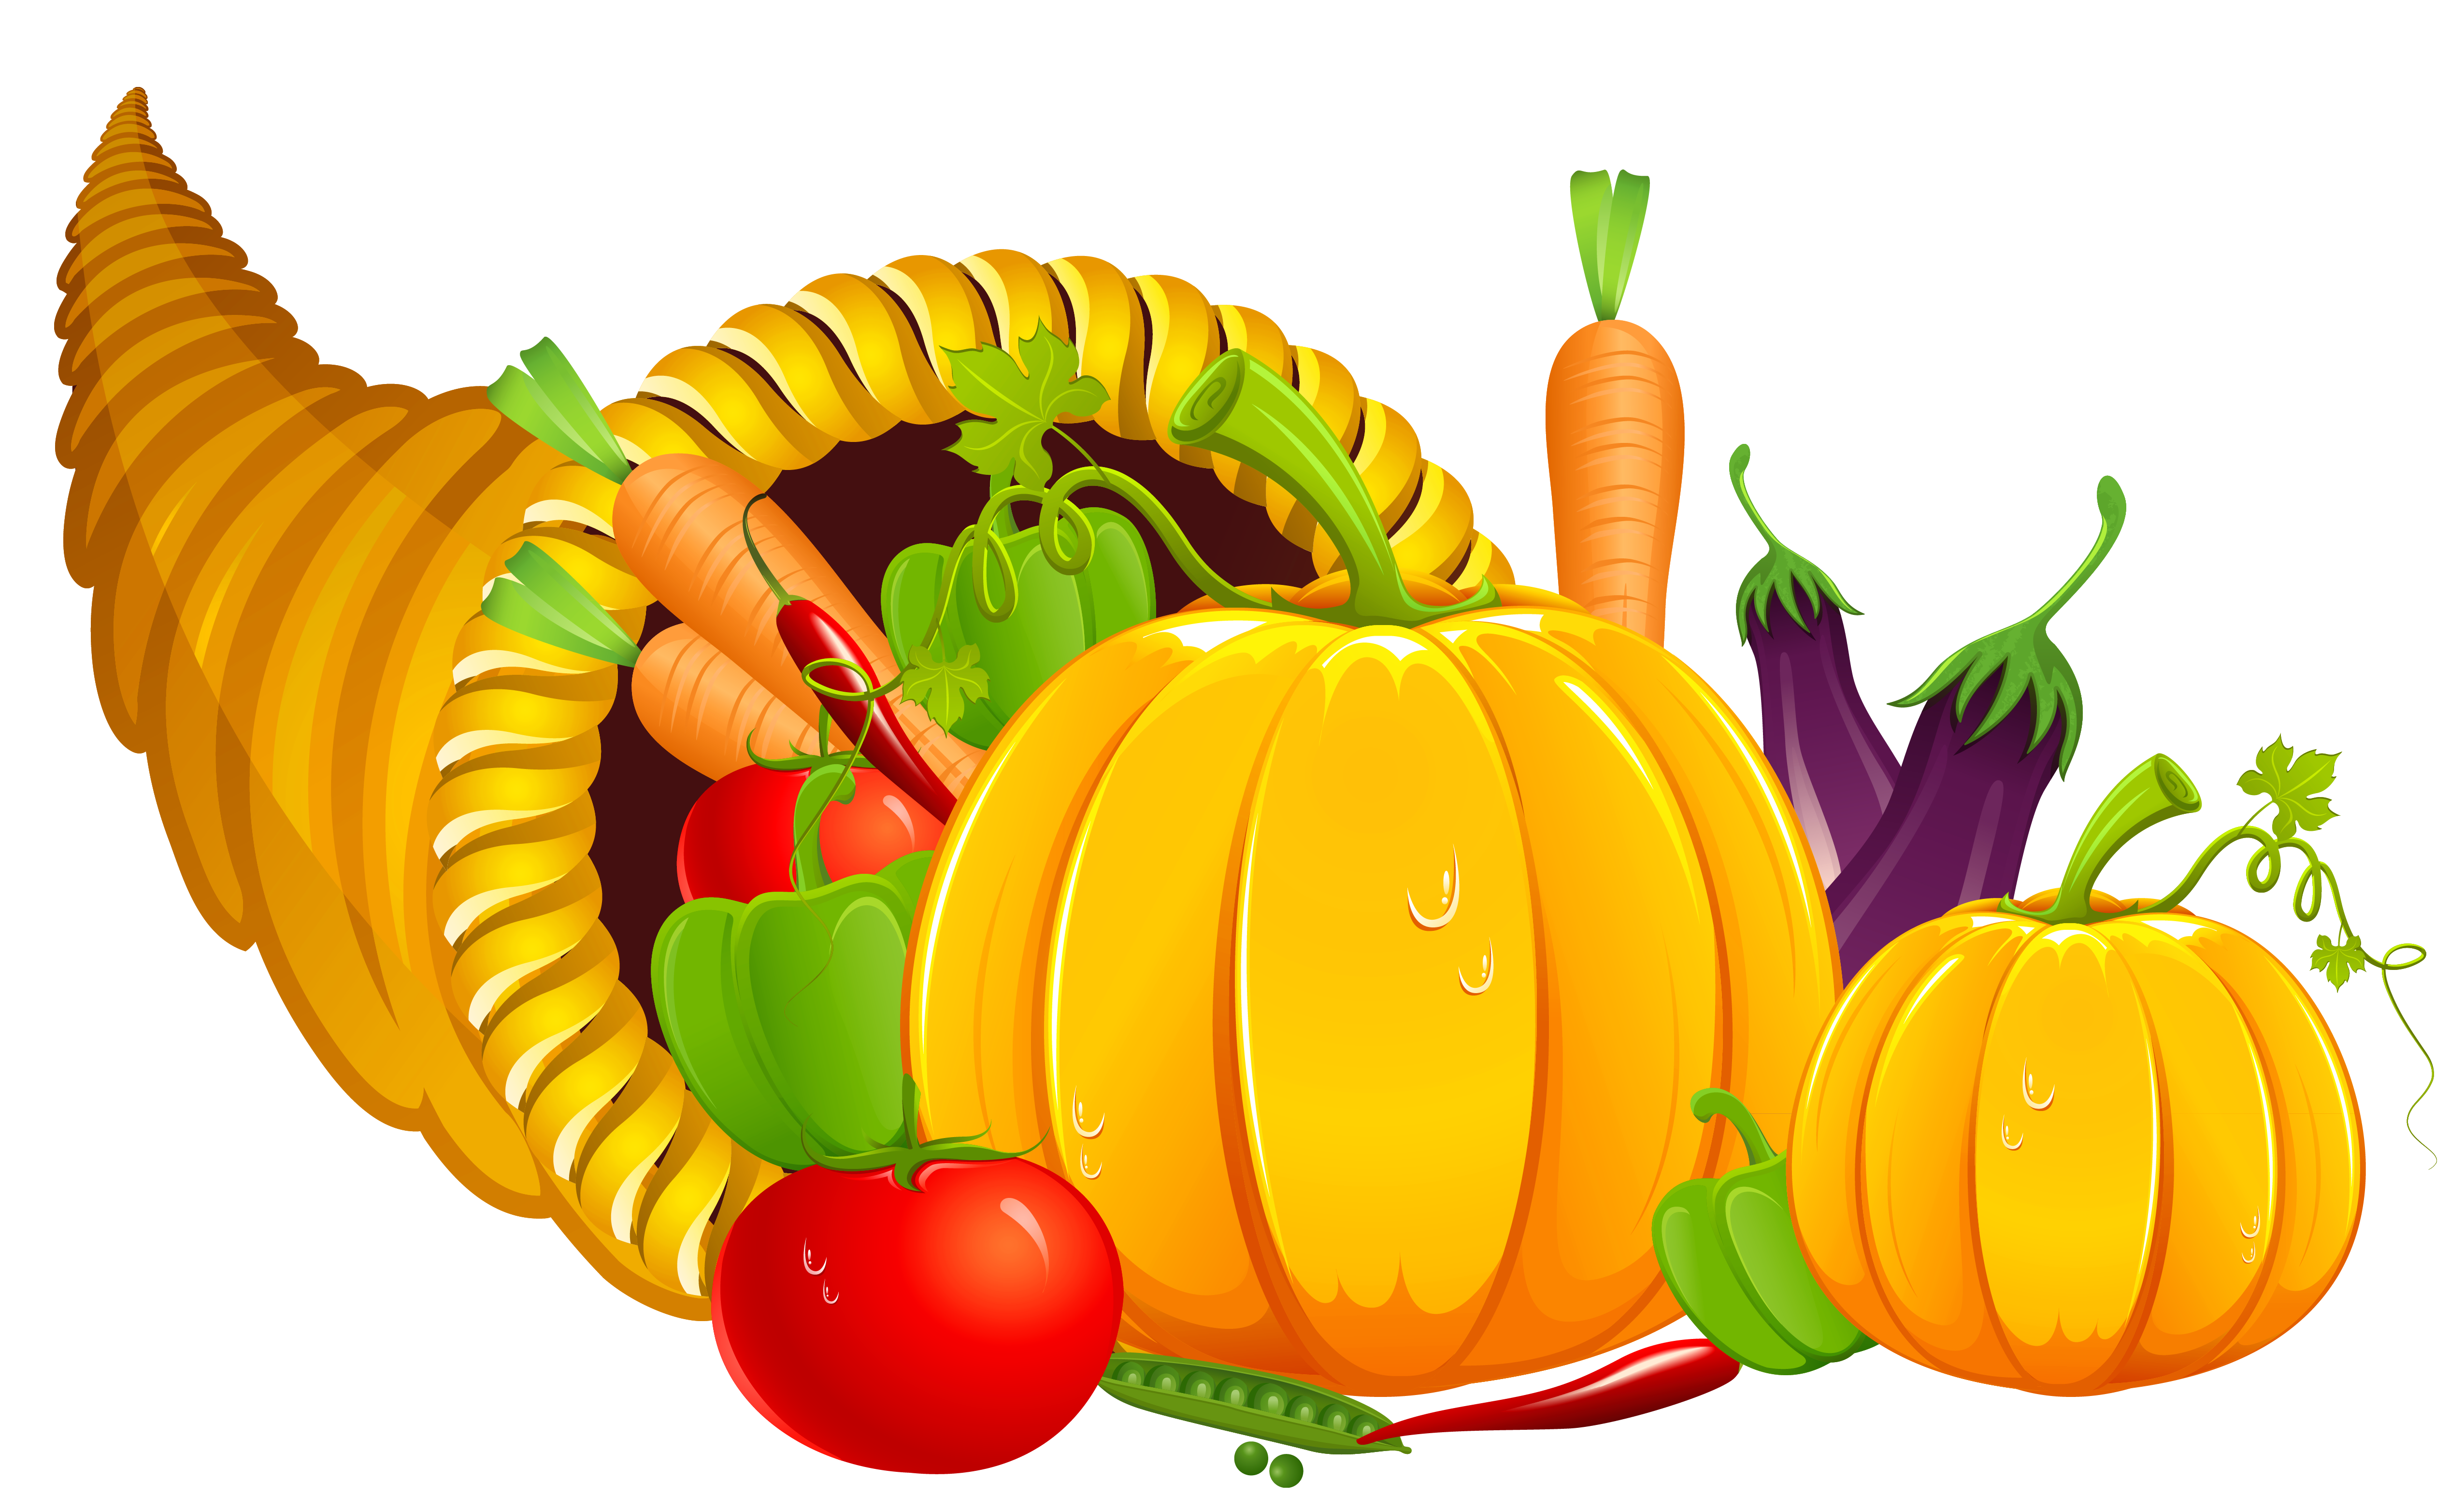 Fall harvest thanksgiving photo clipart clip art transparent library Thanksgiving Cornucopia PNG Clipart | Gallery Yopriceville - High ... clip art transparent library